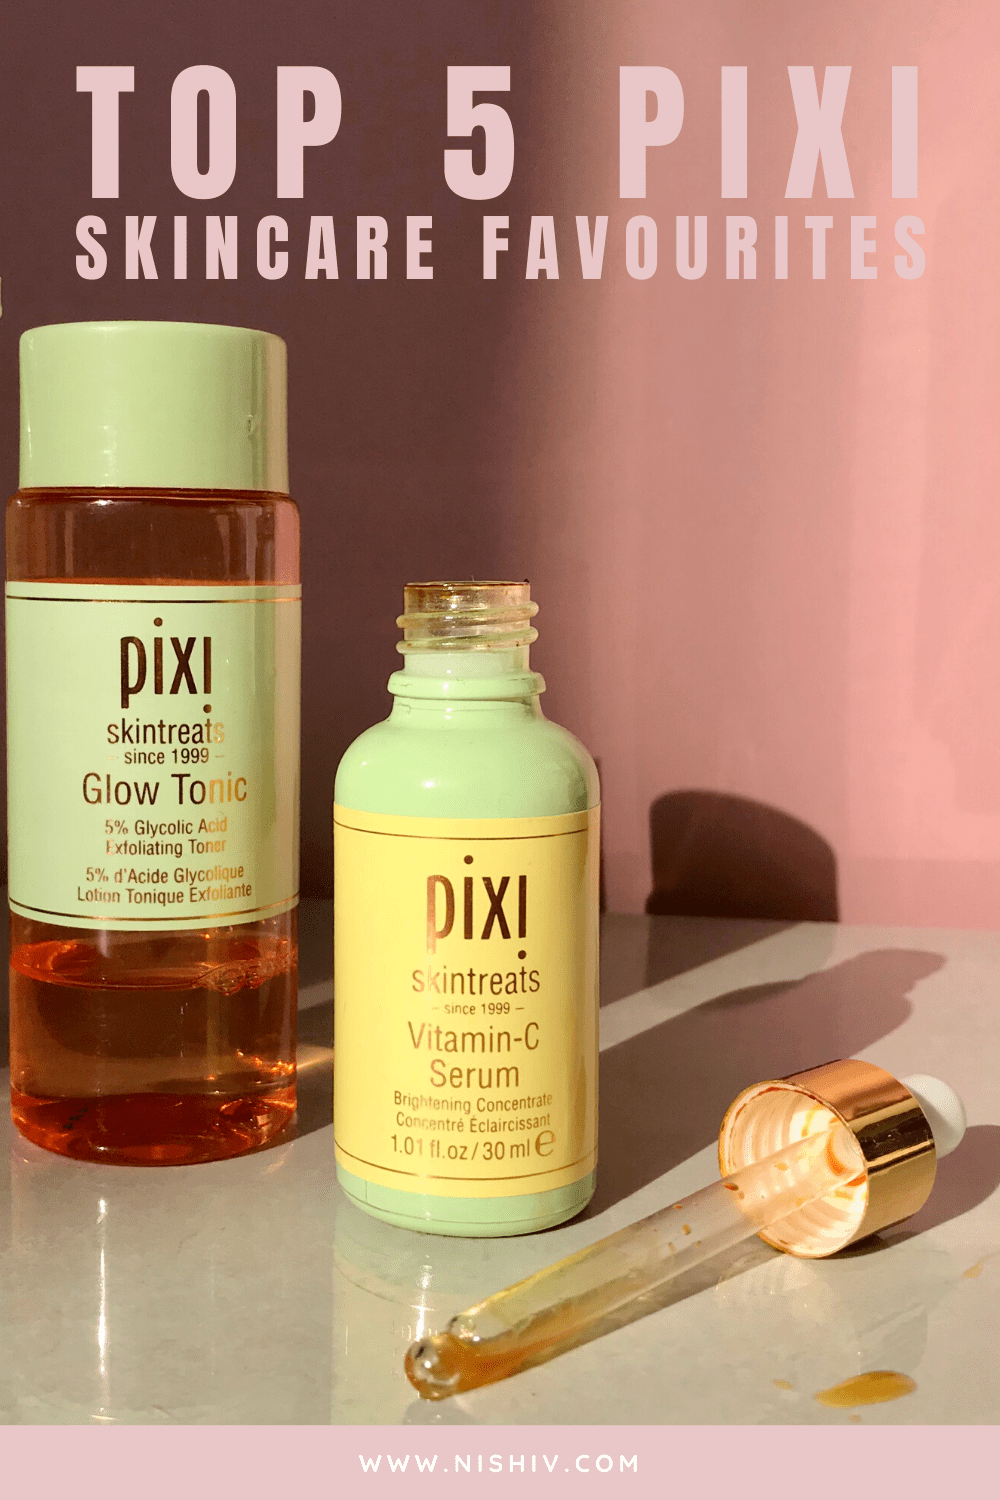 5 Pixi Skincare products